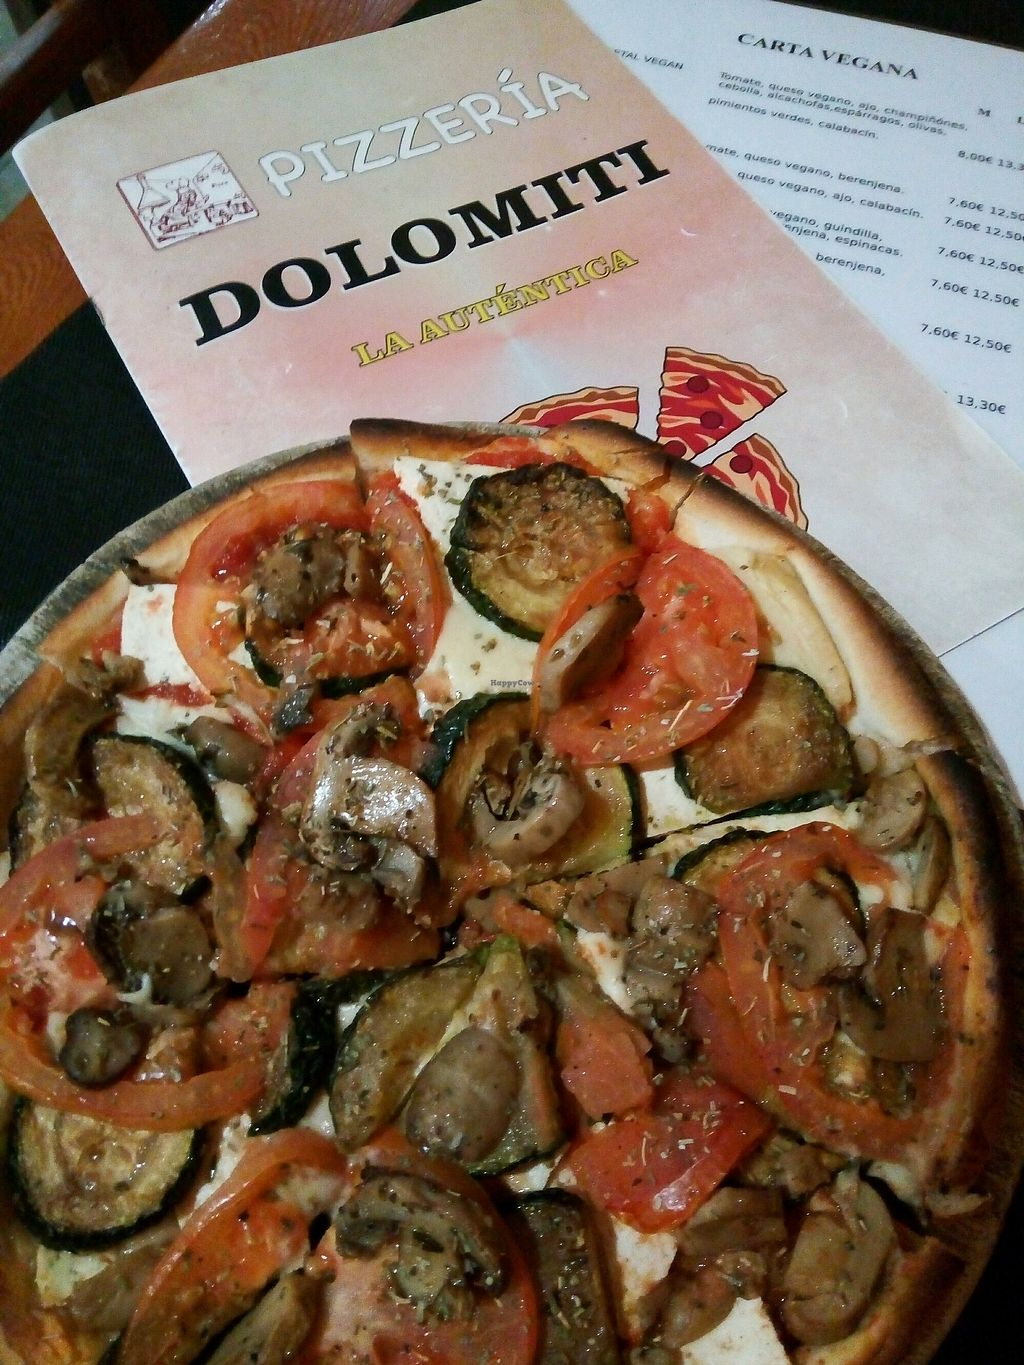 """Photo of Pizzeria Dolomiti  by <a href=""""/members/profile/Caracola"""">Caracola</a> <br/>di tofu <br/> March 7, 2018  - <a href='/contact/abuse/image/106718/367778'>Report</a>"""